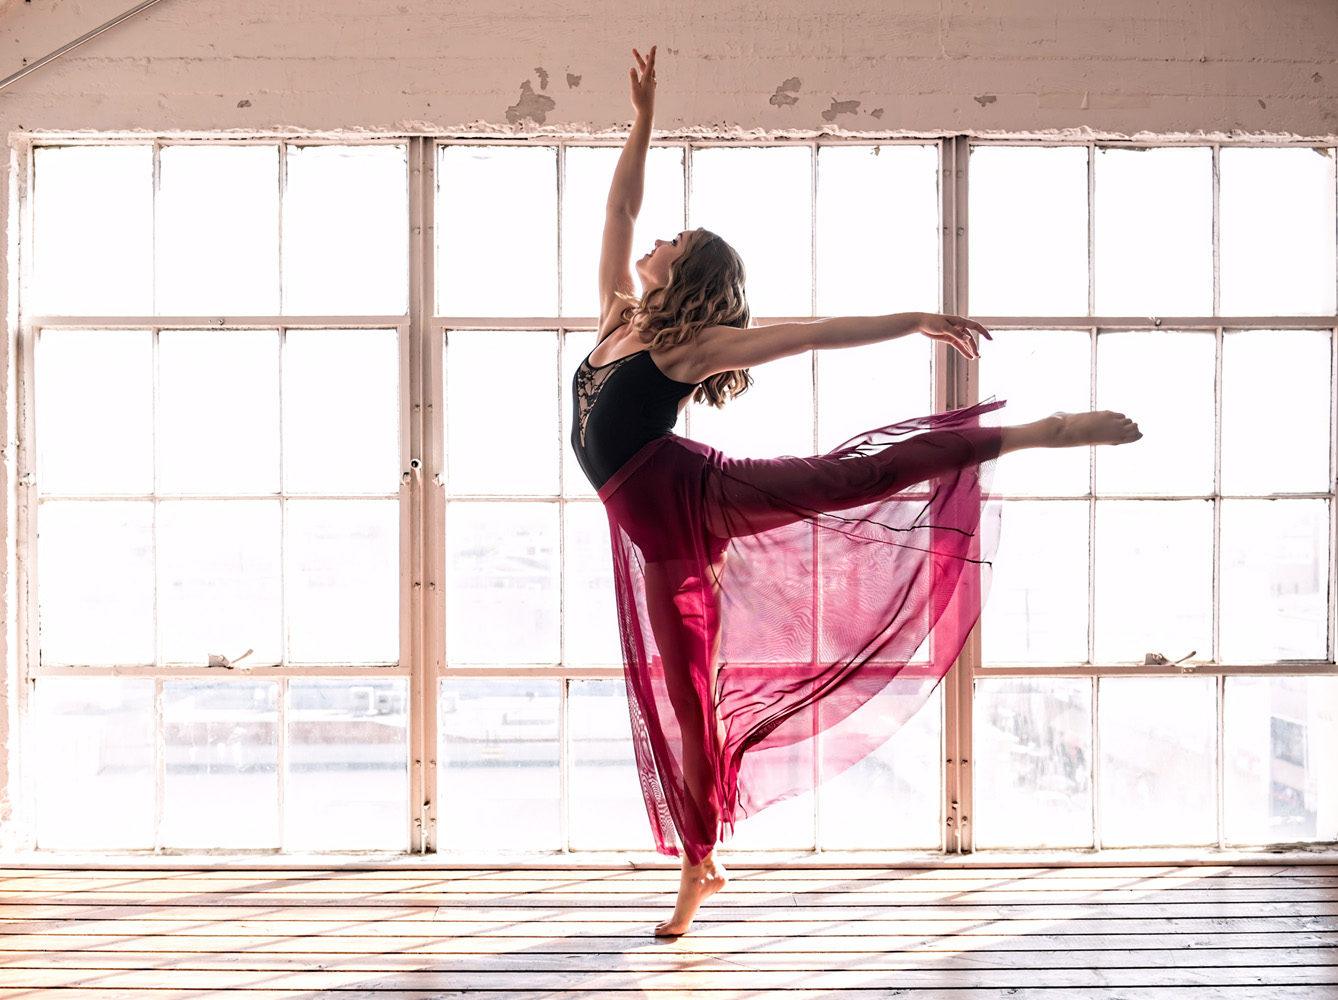 girl in dance pose against window